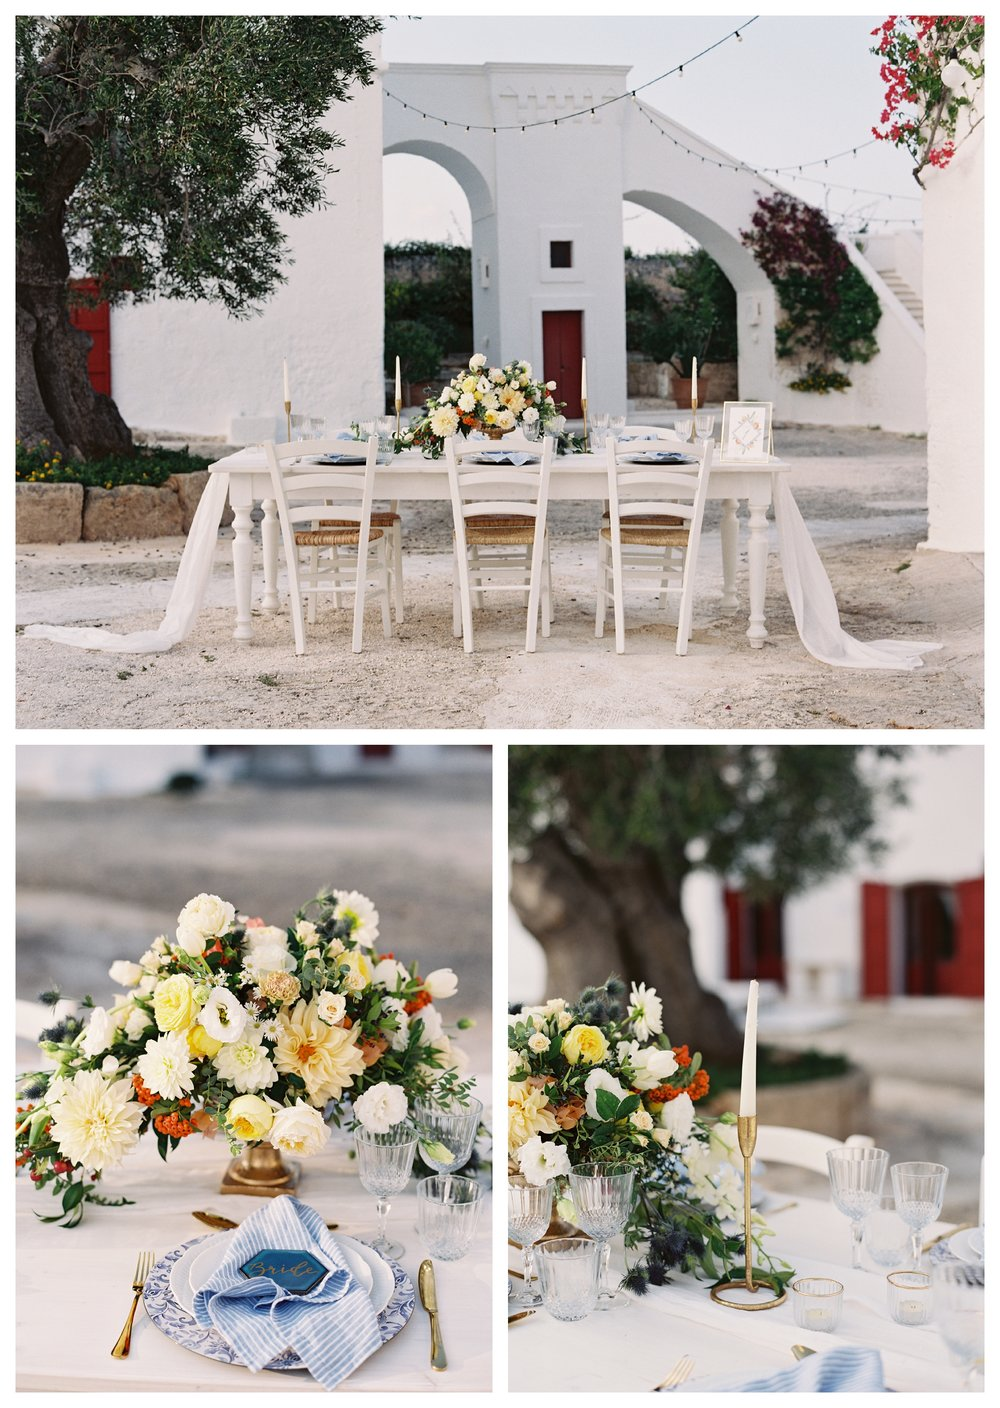 Masseria-torre-coccaro-wedding-photographer-italy-williamsburgphotostudios-011.jpg